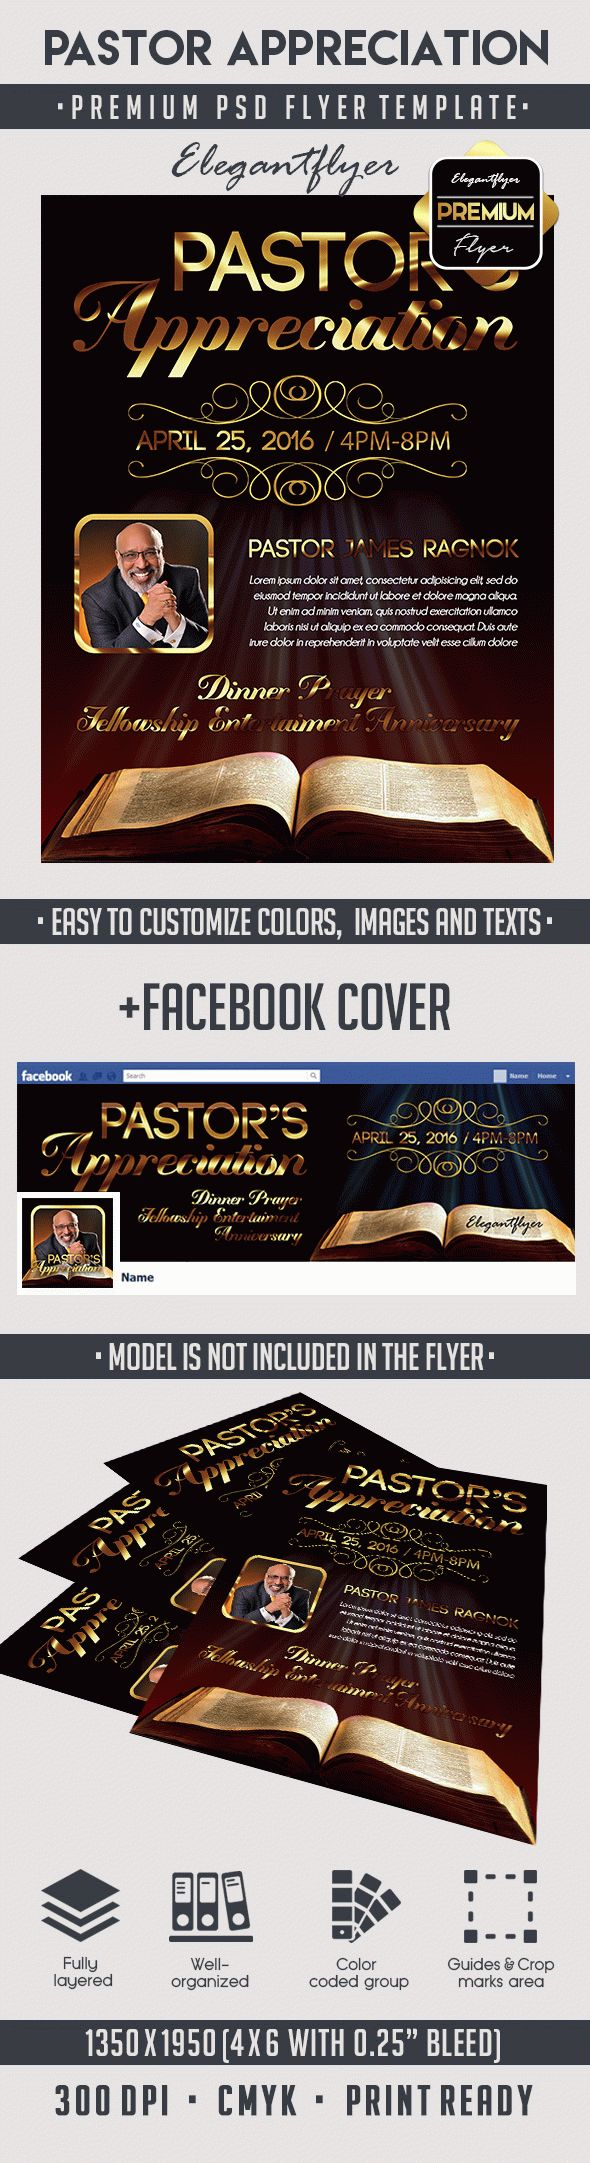 Pastor Appreciation – Premium Flyer PSD Template + Facebook Cover